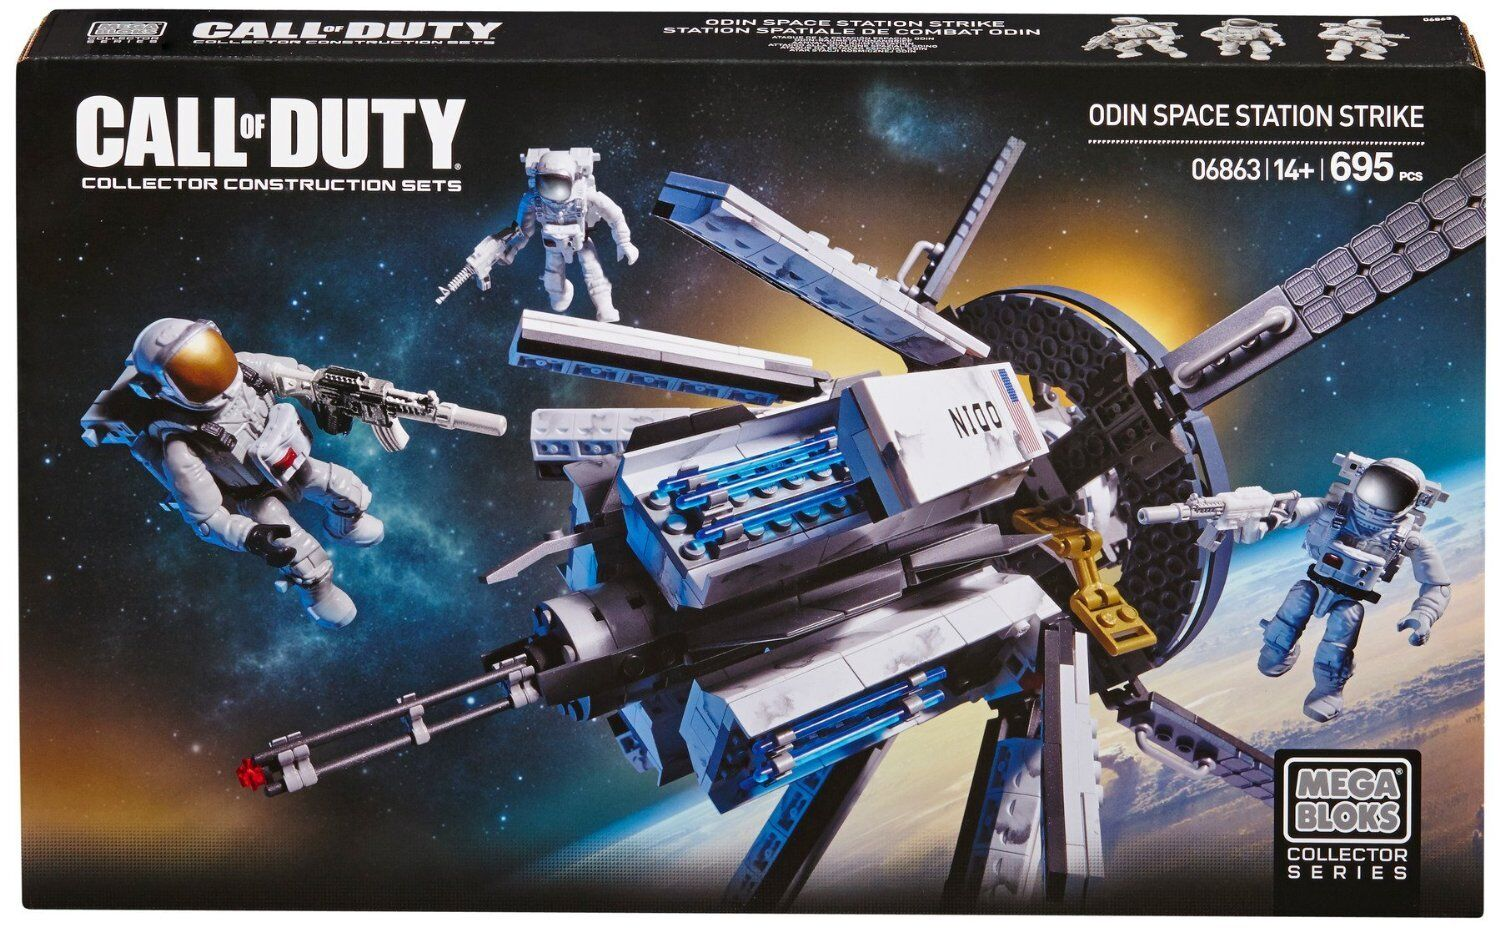 Mega Bloks Call of Duty Odin Space Station Strike 06863